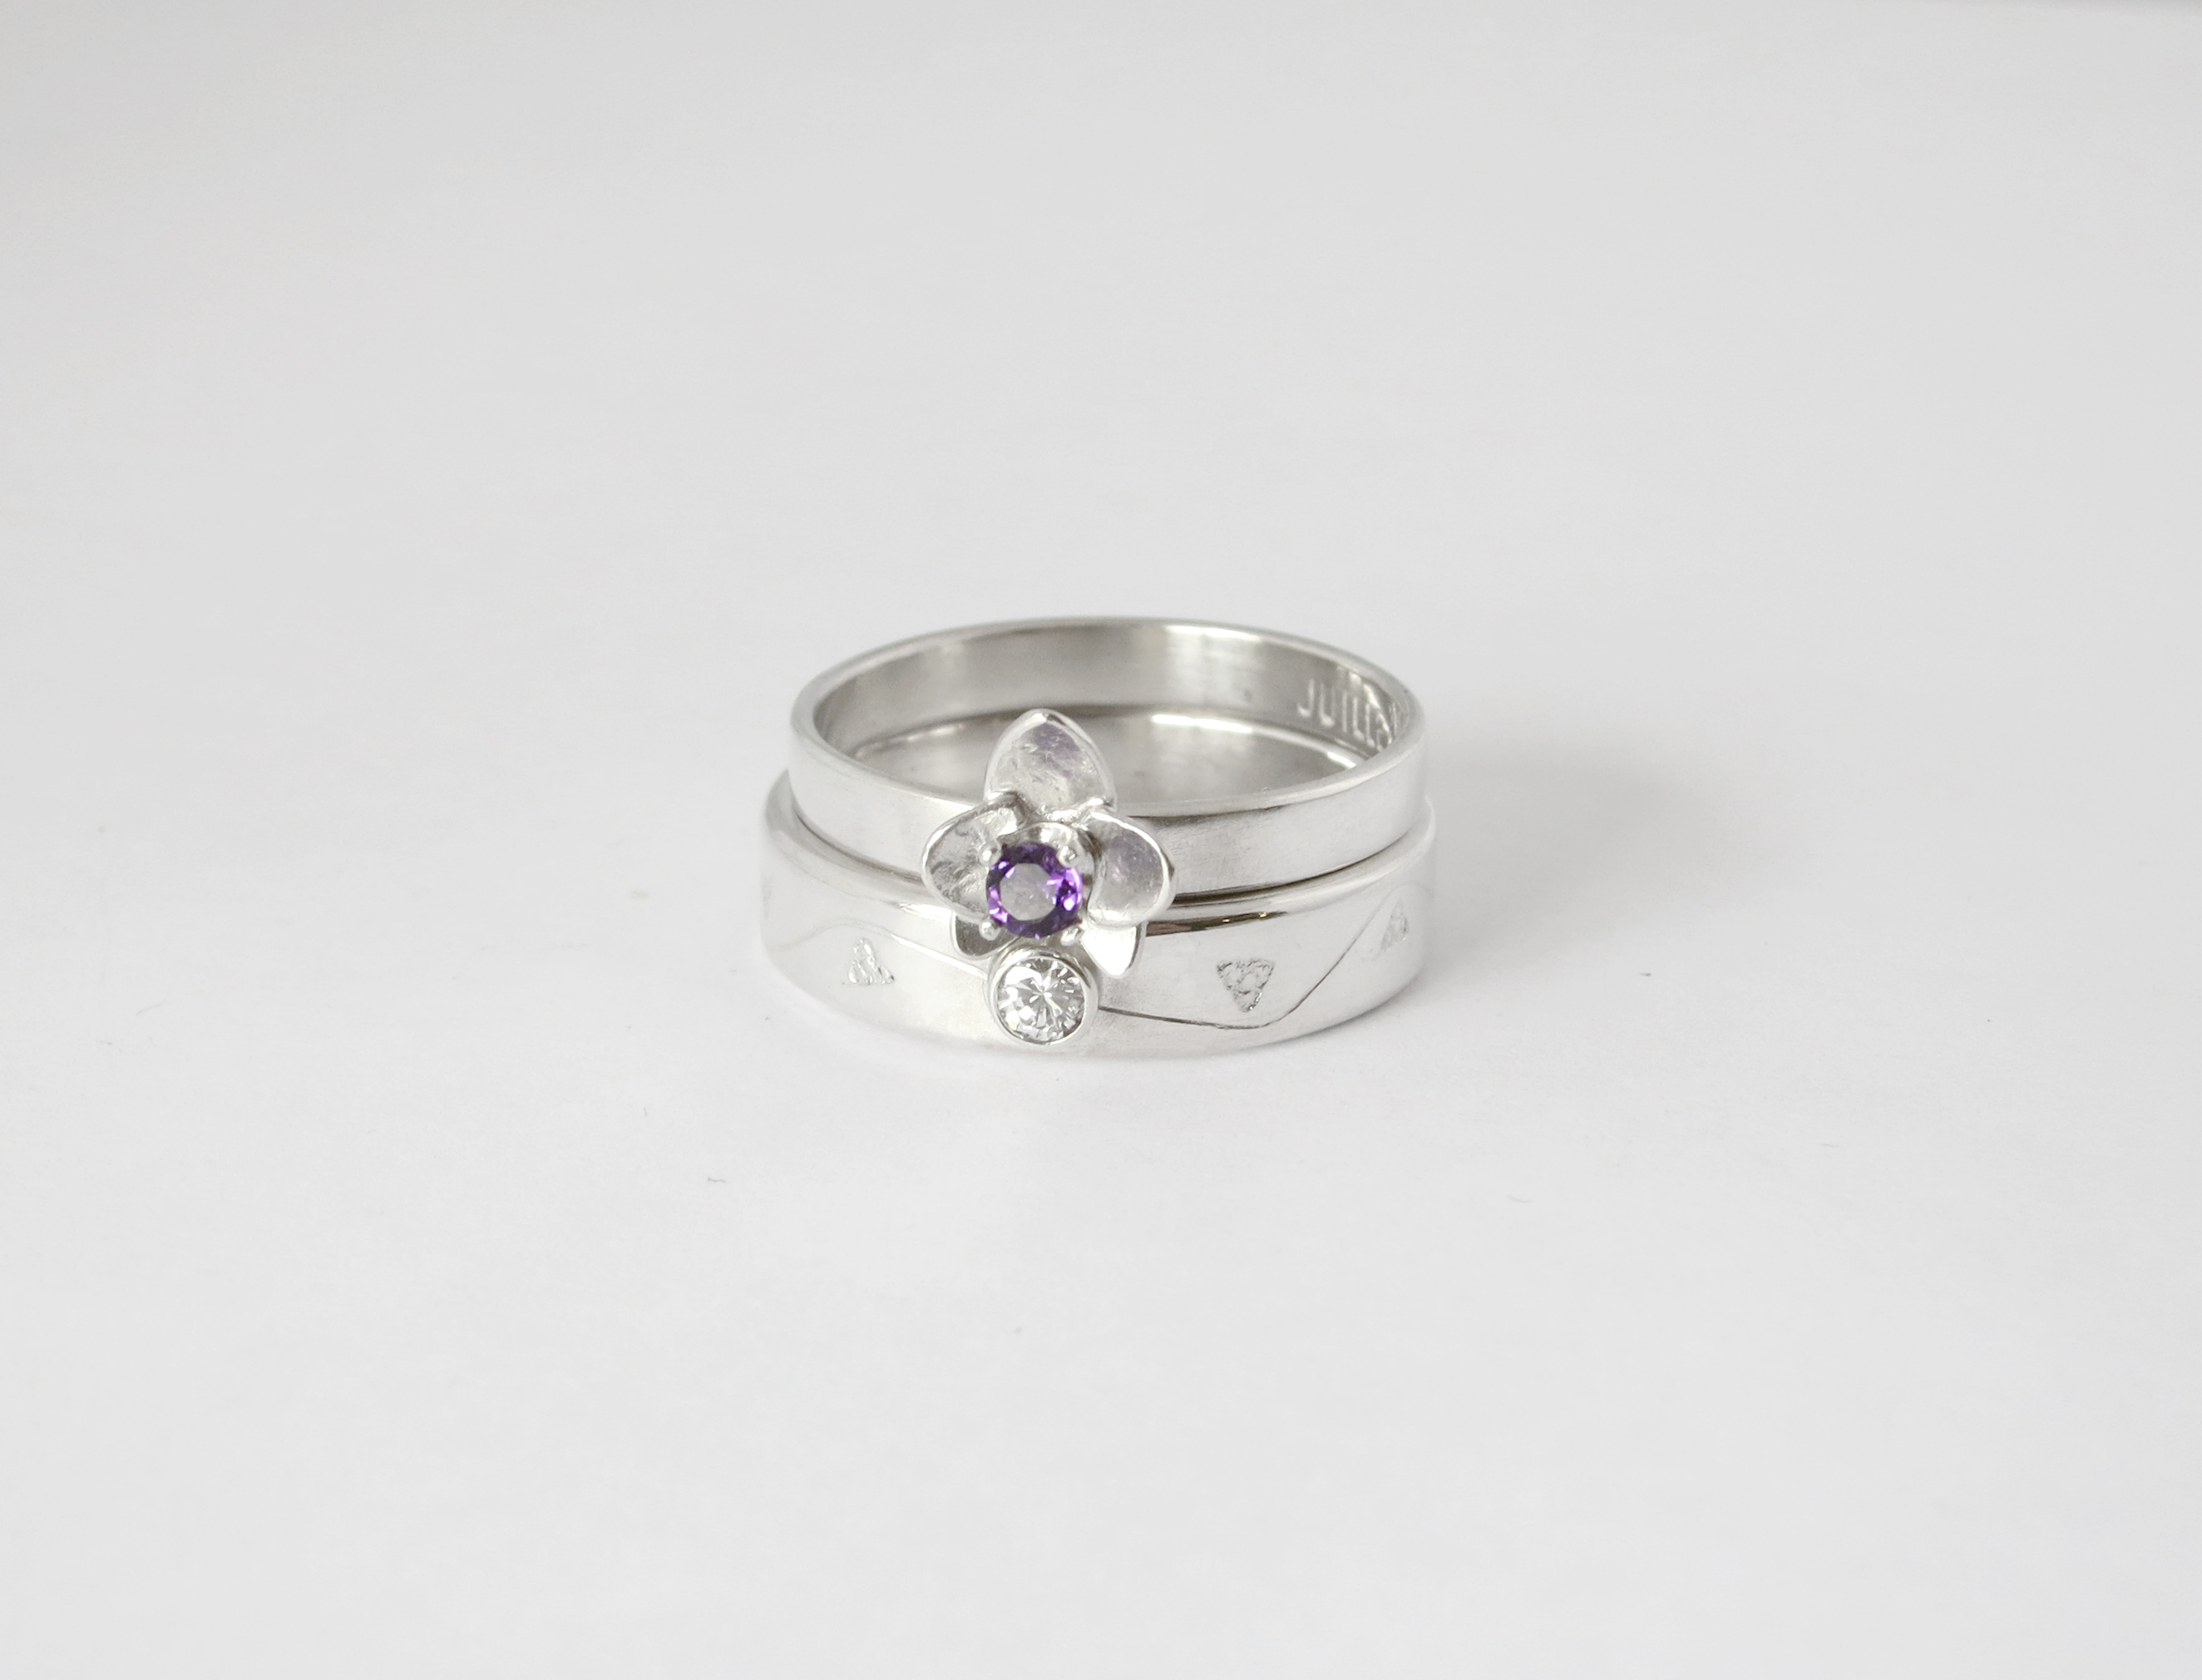 Wedding ring set in sterling silver with amethyst and diamond